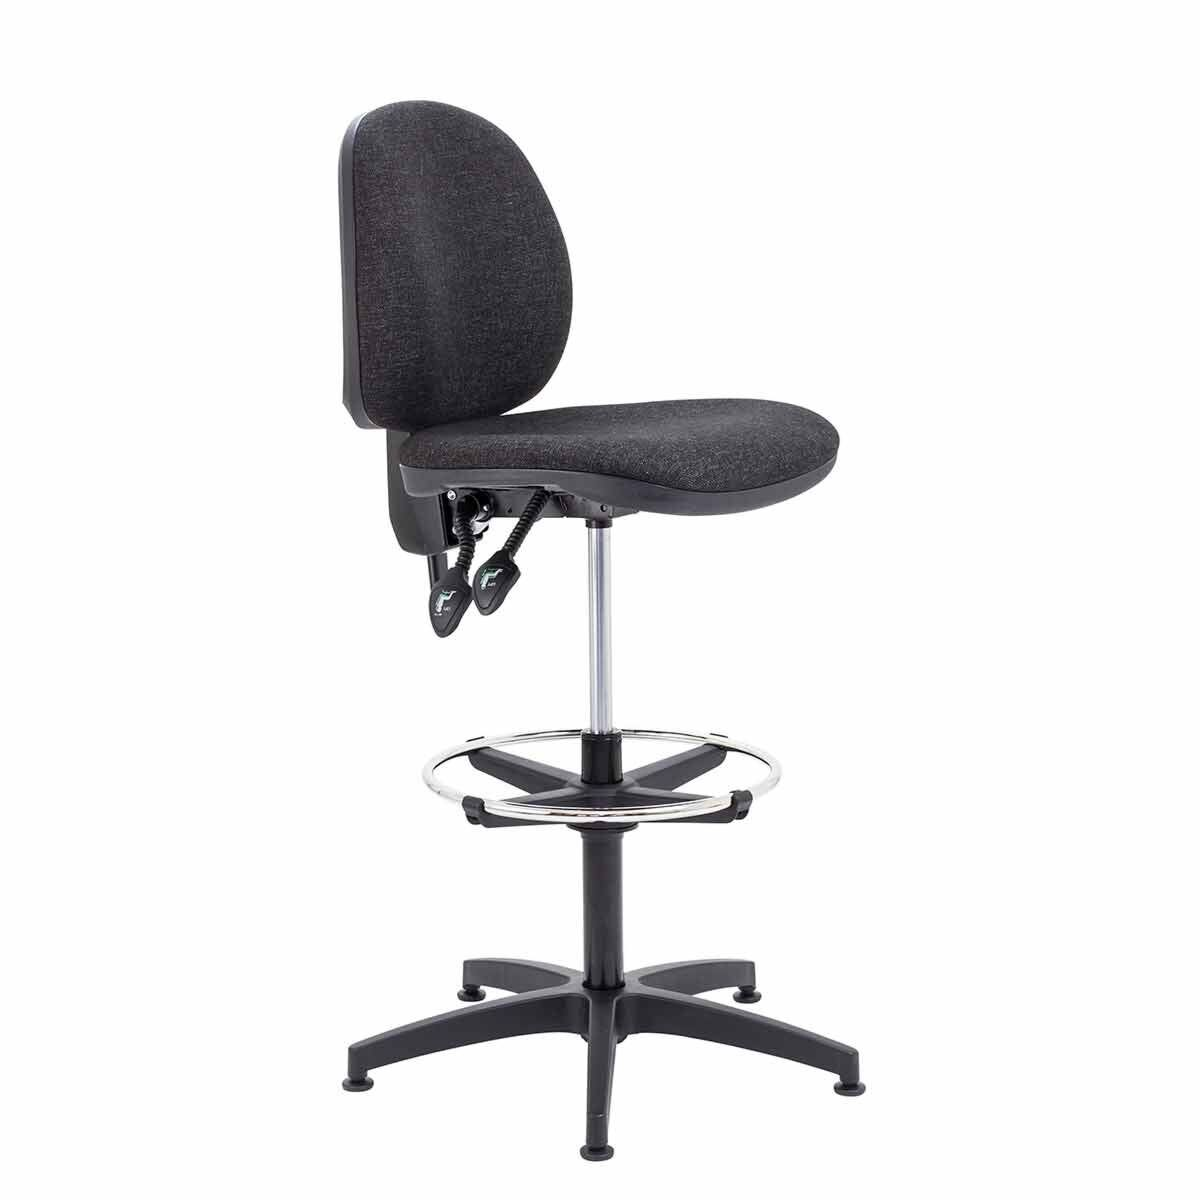 TC Office Concept Mid Back Chair with Adjustable Foot Ring Charcoal